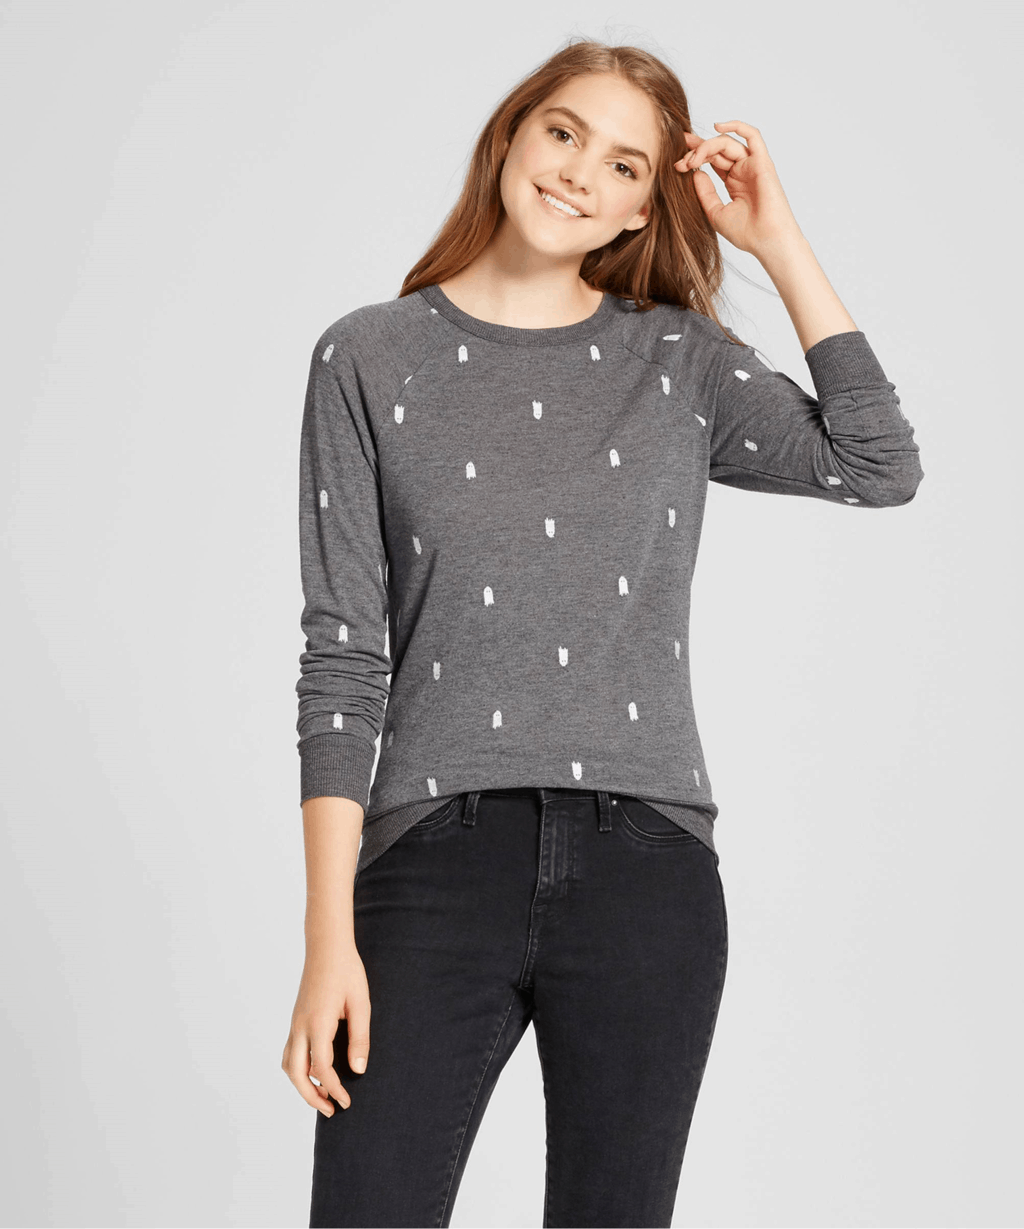 Ghost printed sweater in gray from Target